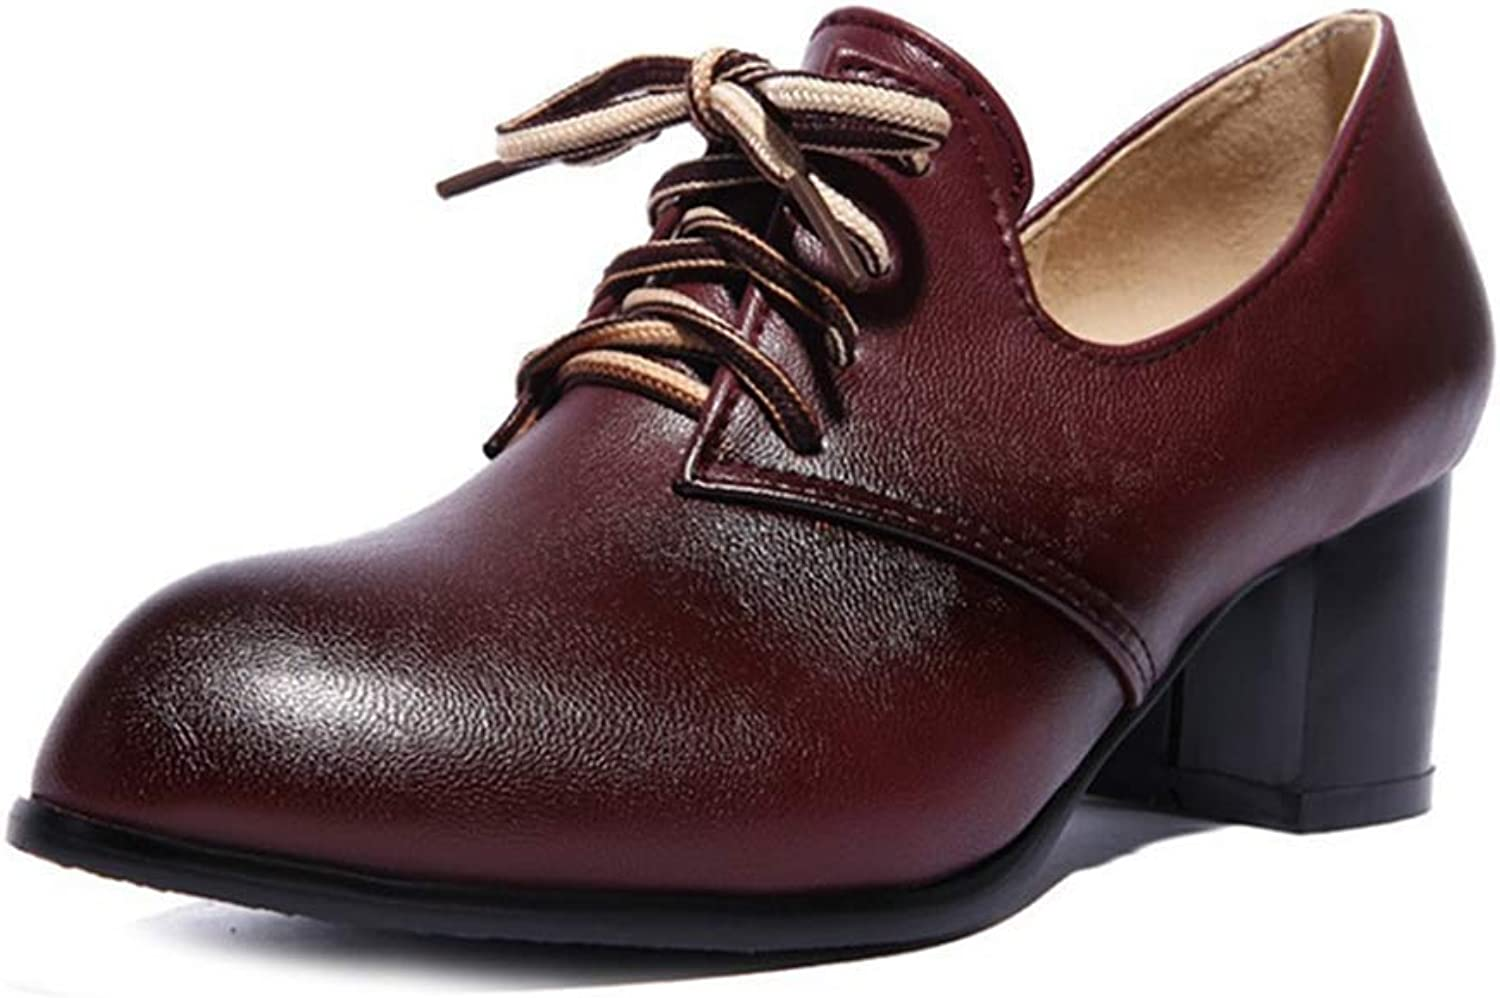 Fashion shoesbox Women's Lace Up Wingtip Oxford shoes Pumps Pointed Toe Platform Mid Block Heel Dress Oxfords Brogues